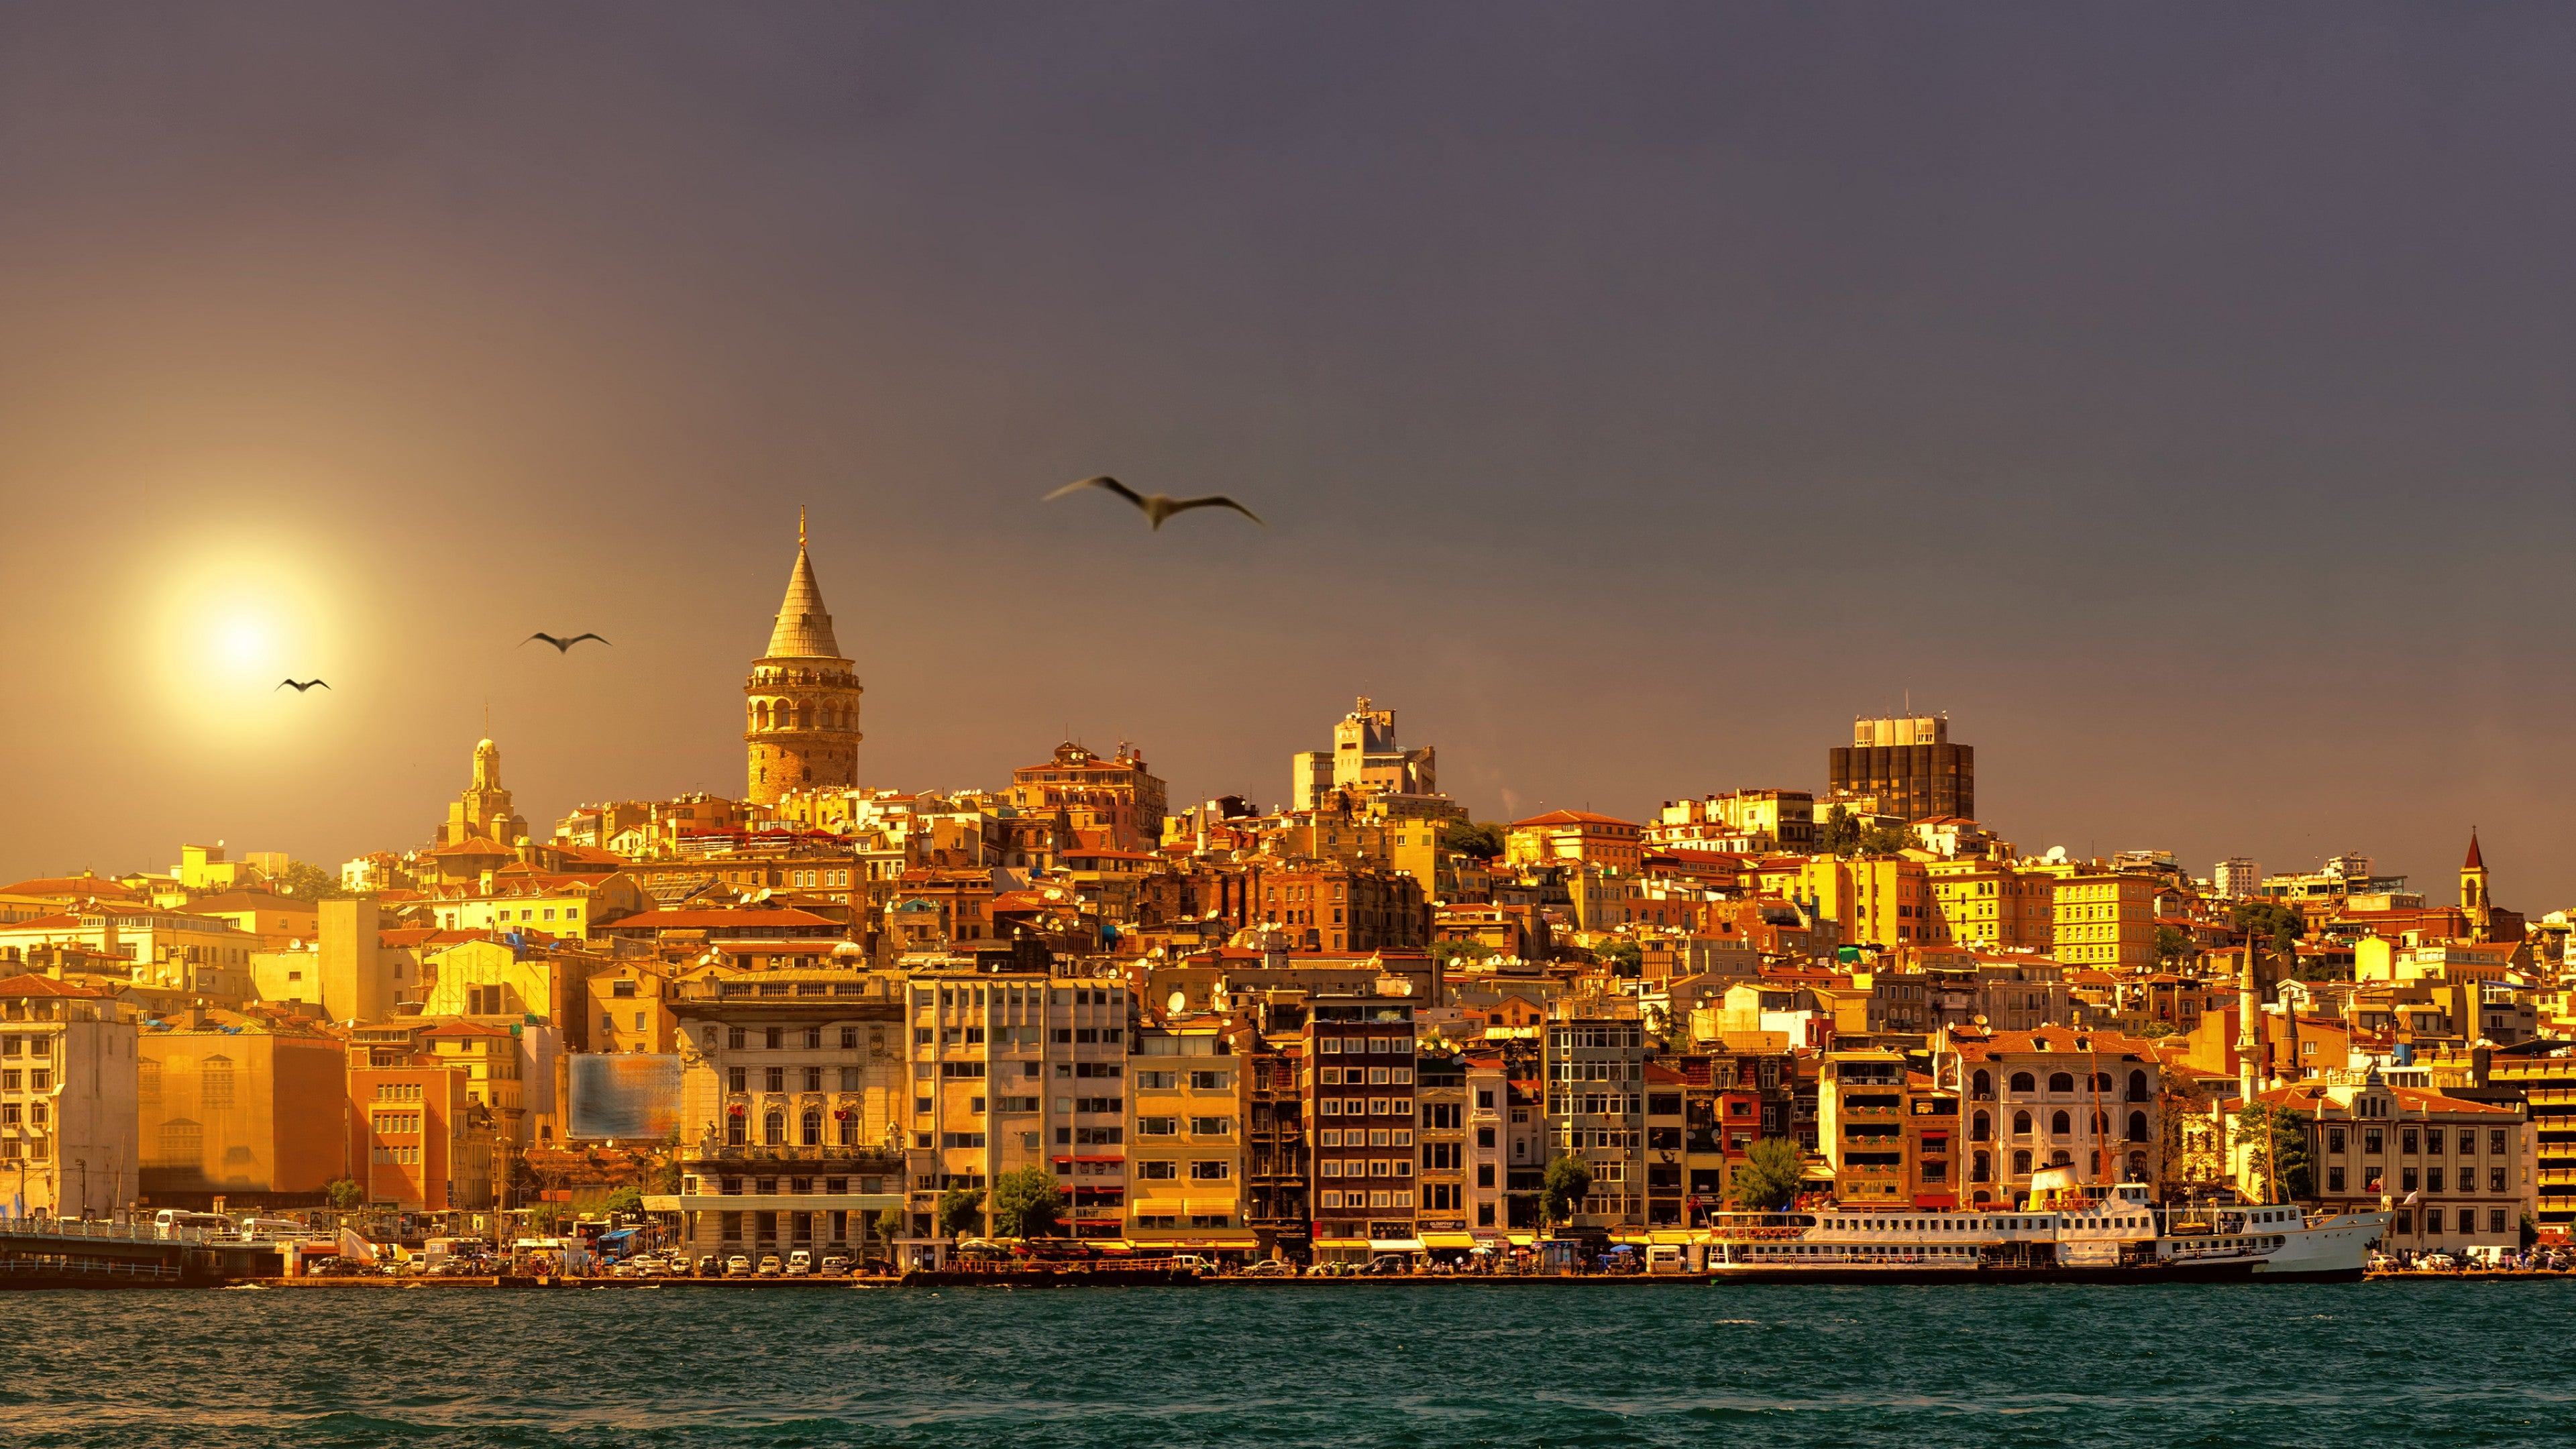 Turkey 4K wallpapers for your desktop or mobile screen ...